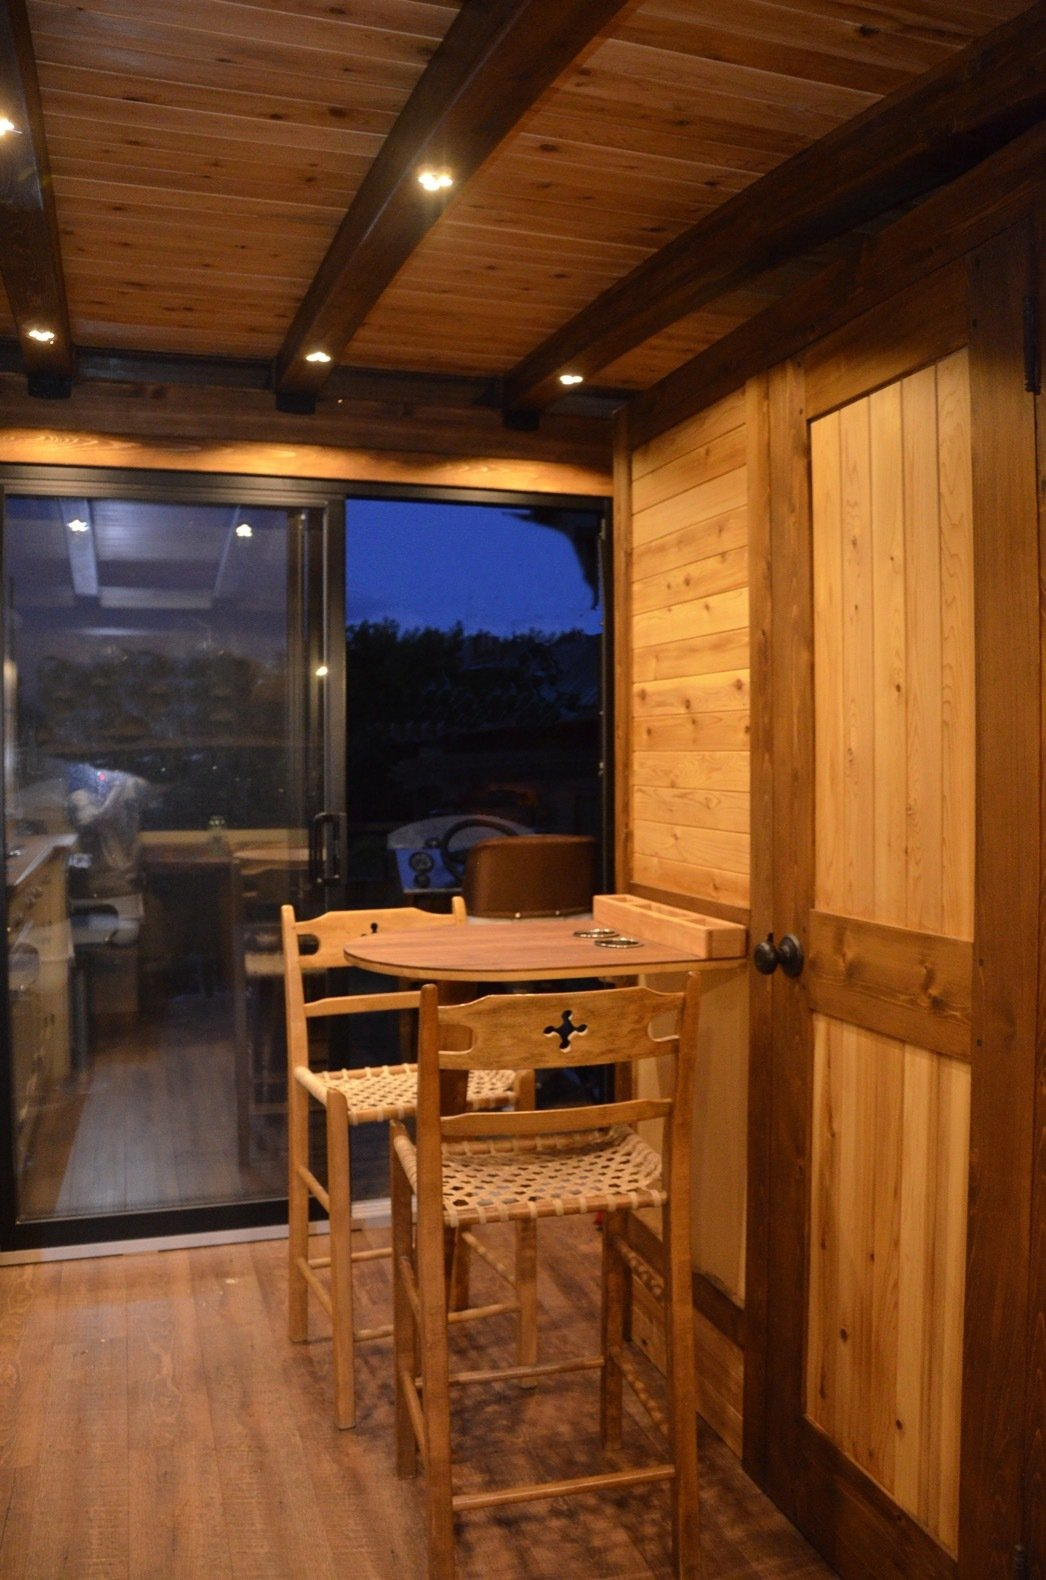 Living Room, Medium Hardwood Floor, Chair, Table, and Recessed Lighting A 24-inch bistro table juts out from the bathroom module.  Photo 6 of 15 in Kick Back in This Tiny, Solar-Powered Houseboat For $61K